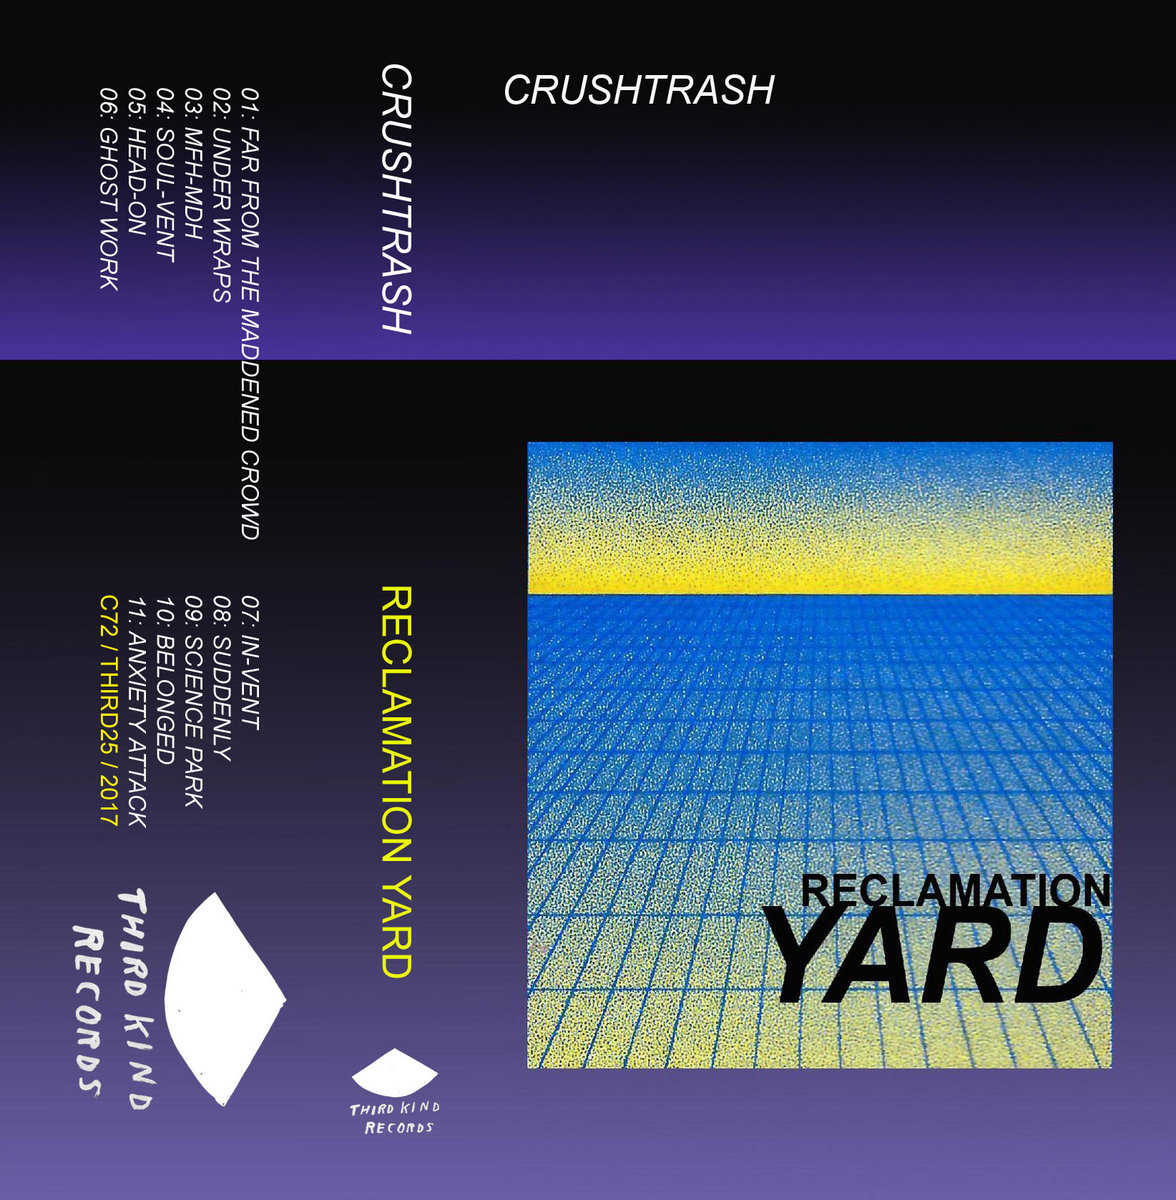 Reclamation Yard | Third Kind Records